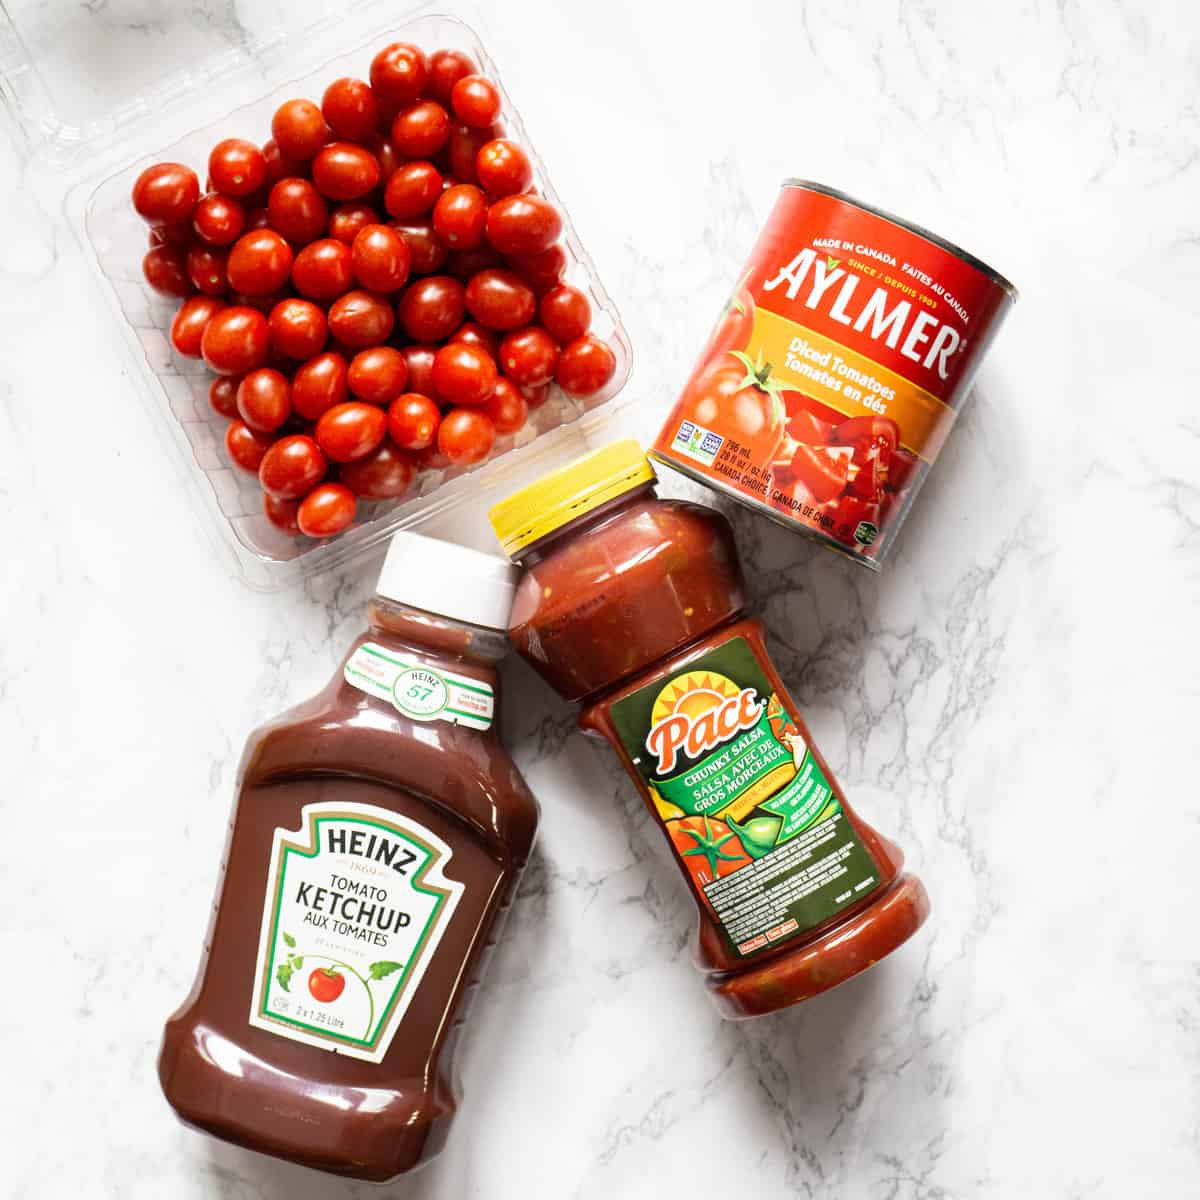 Cherry tomatoes, canned tomatoes, salsa, and ketchup